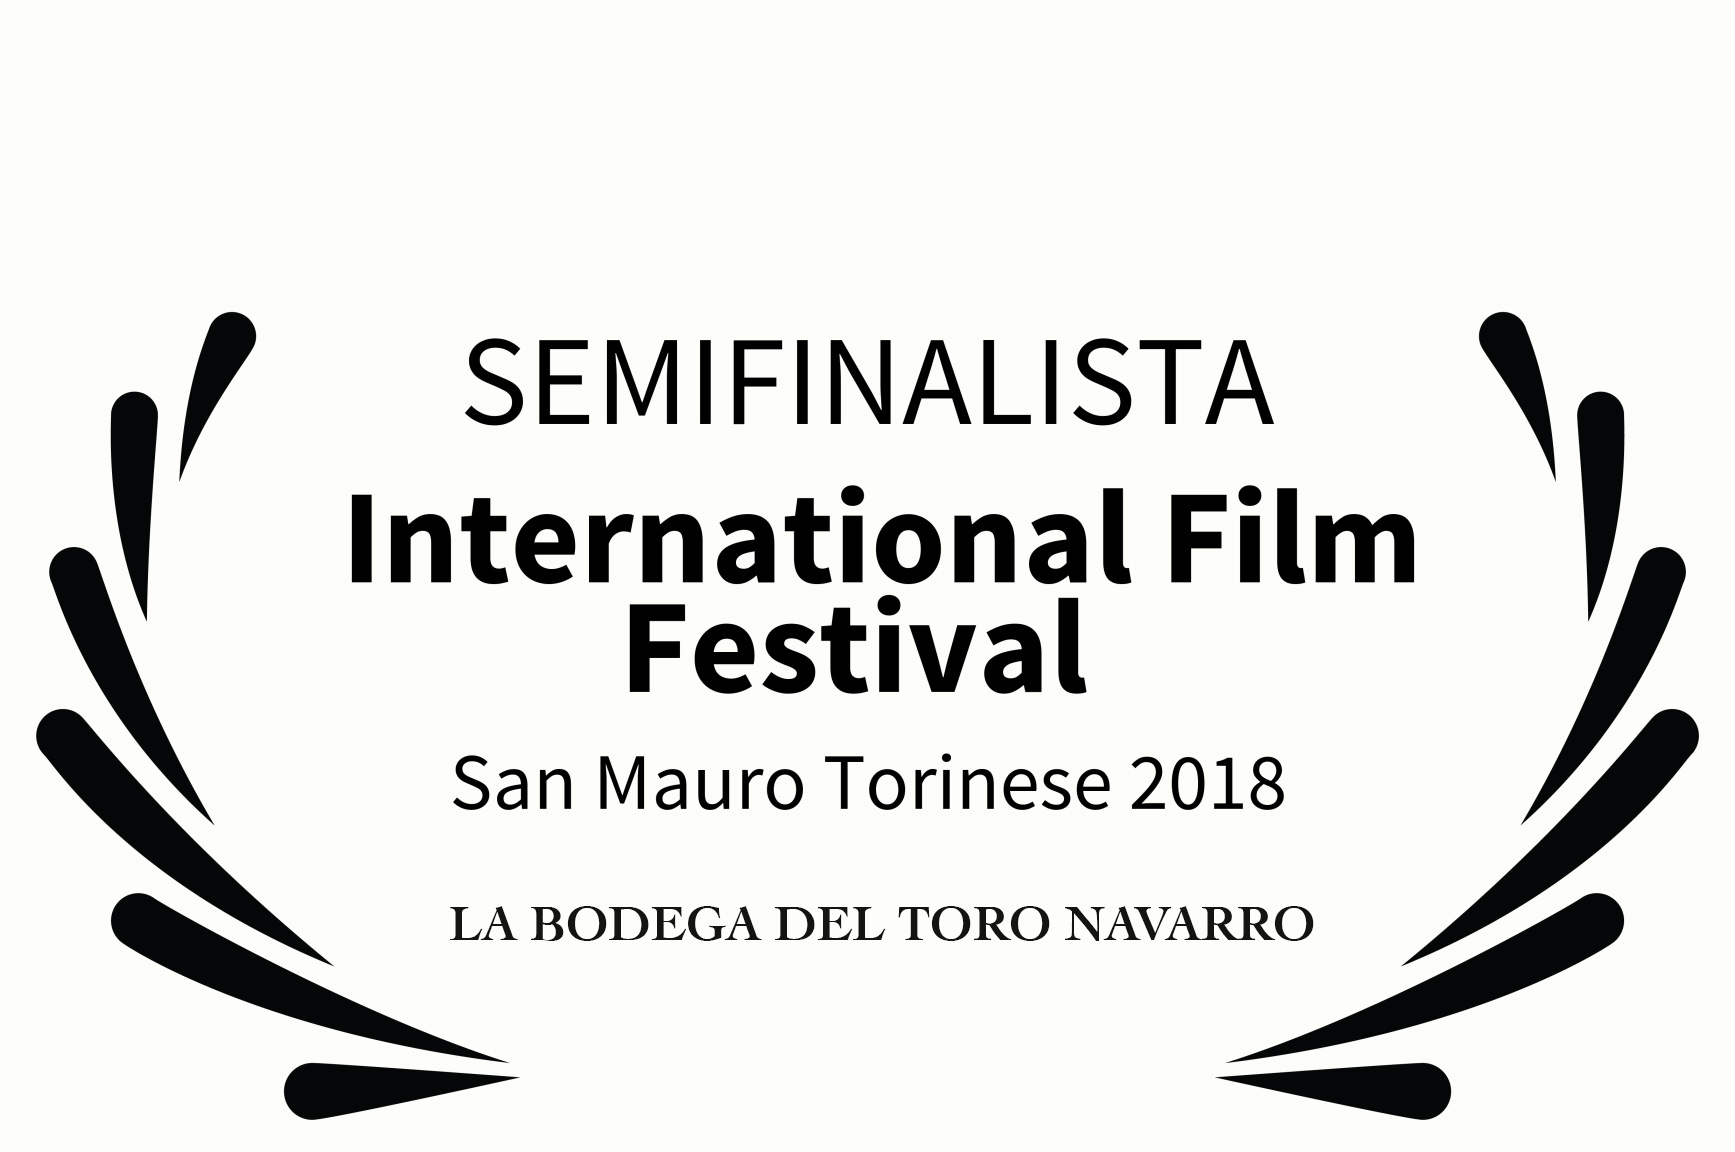 SEMIFINALISTA - International Film Festival  - San Mauro Torinese 2018-2